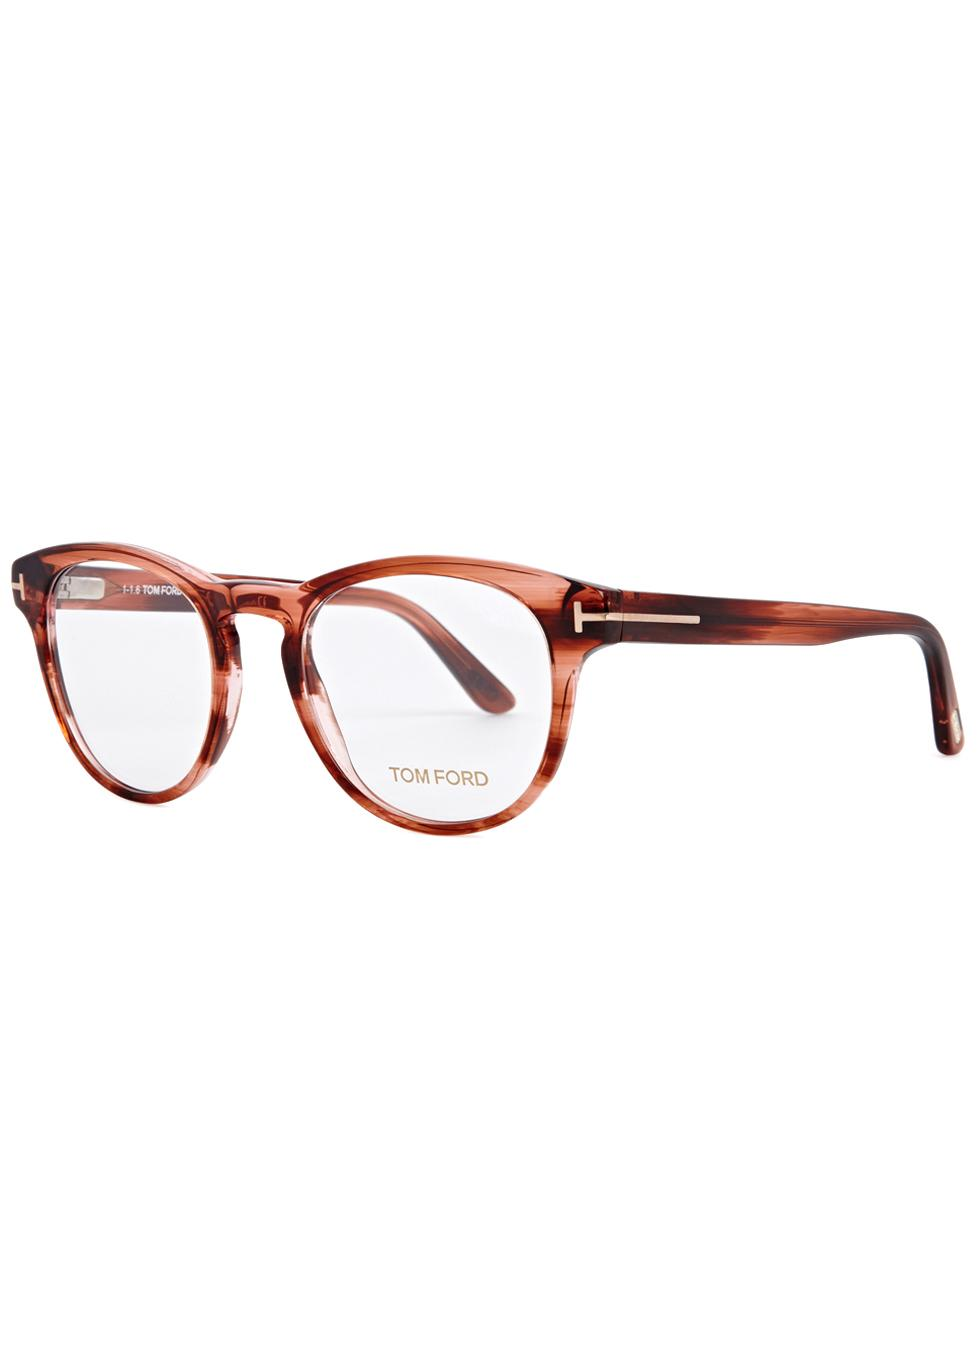 f26a2369724 Tom Ford Rust Round-frame Optical Glasses in Red - Lyst